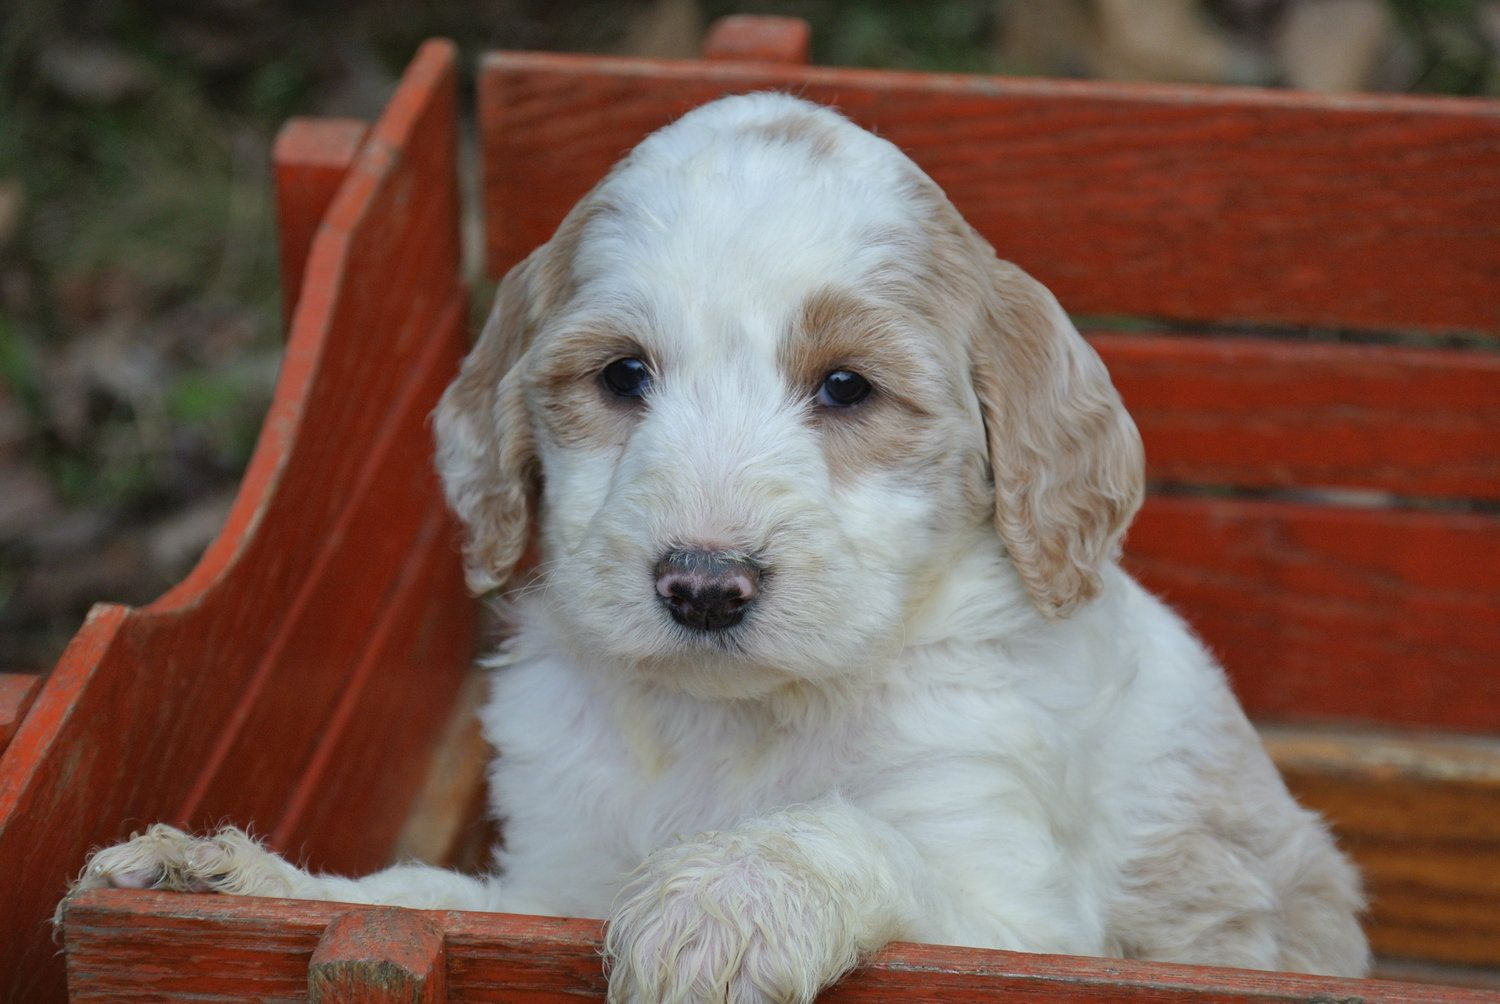 Sheepadoodle Puppies Characteristics Pictures Advantages Colors Sheepadoodle Puppy Puppy Adoption Kittens And Puppies